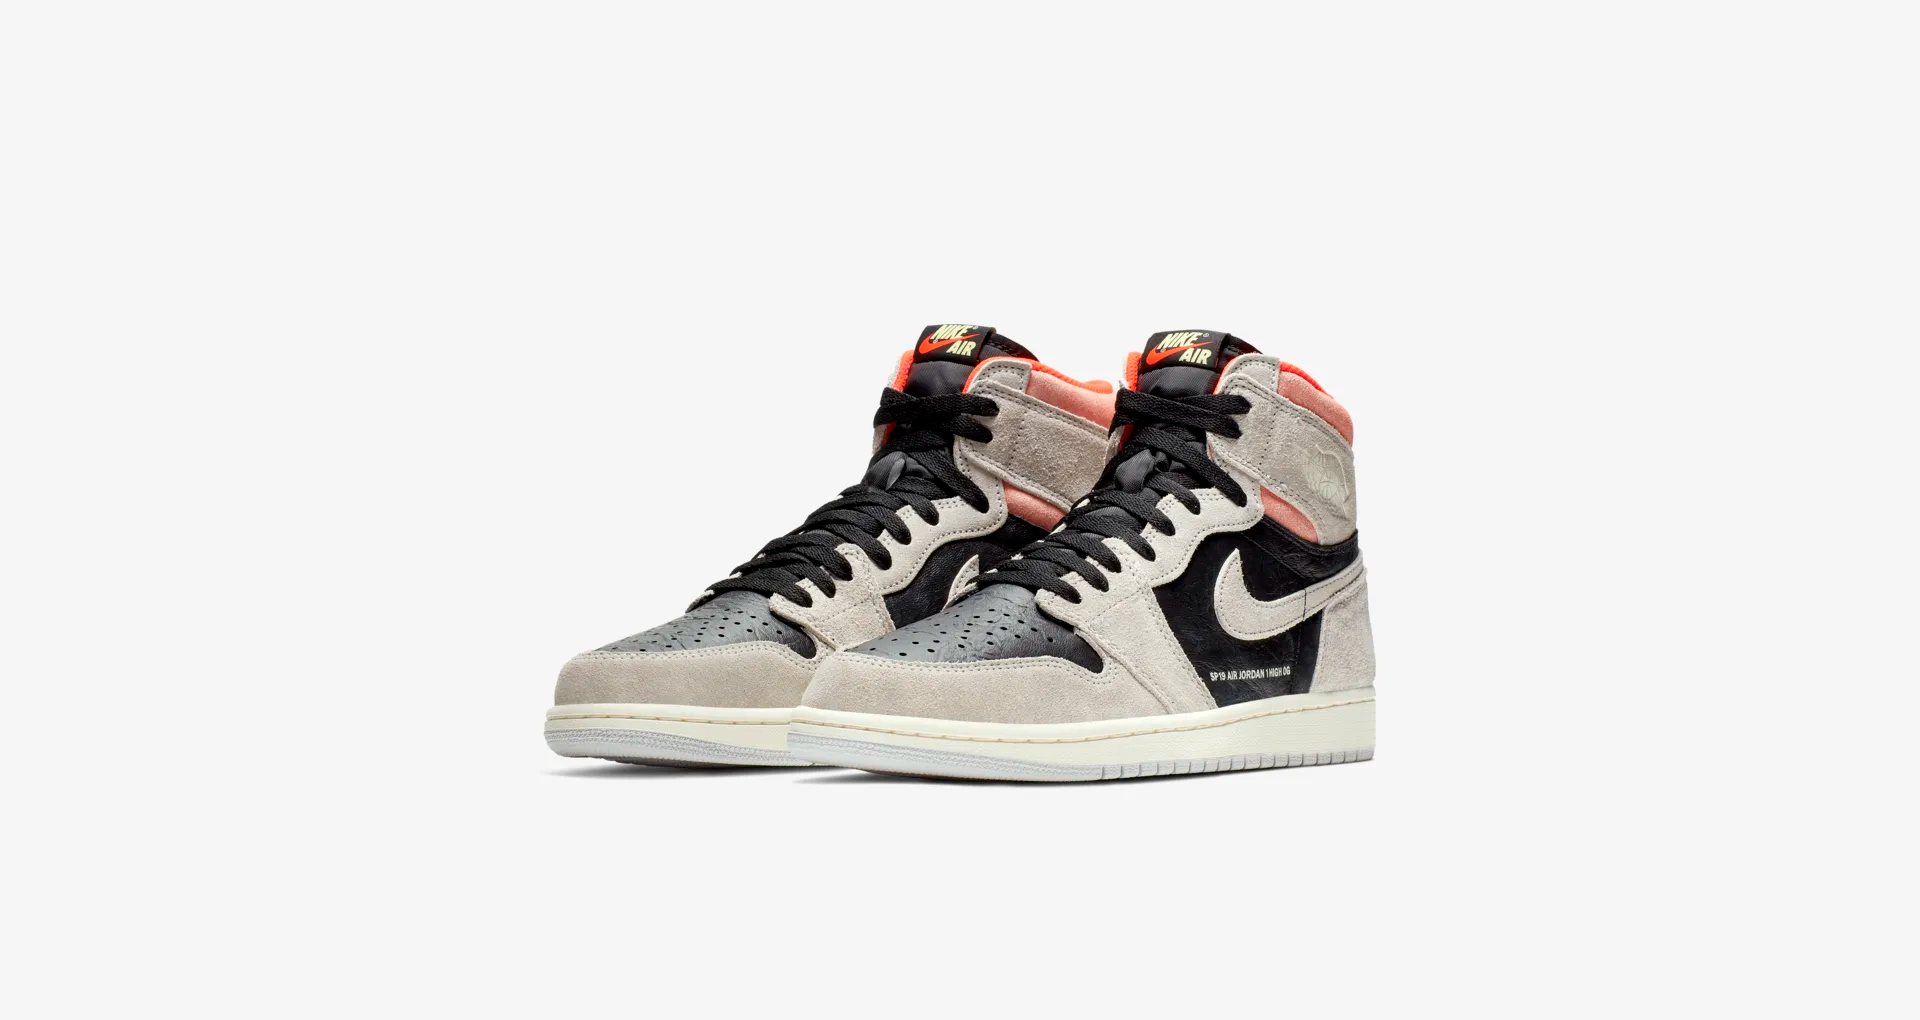 555088 018 Air Jordan 1 High OG Neutral Grey 5